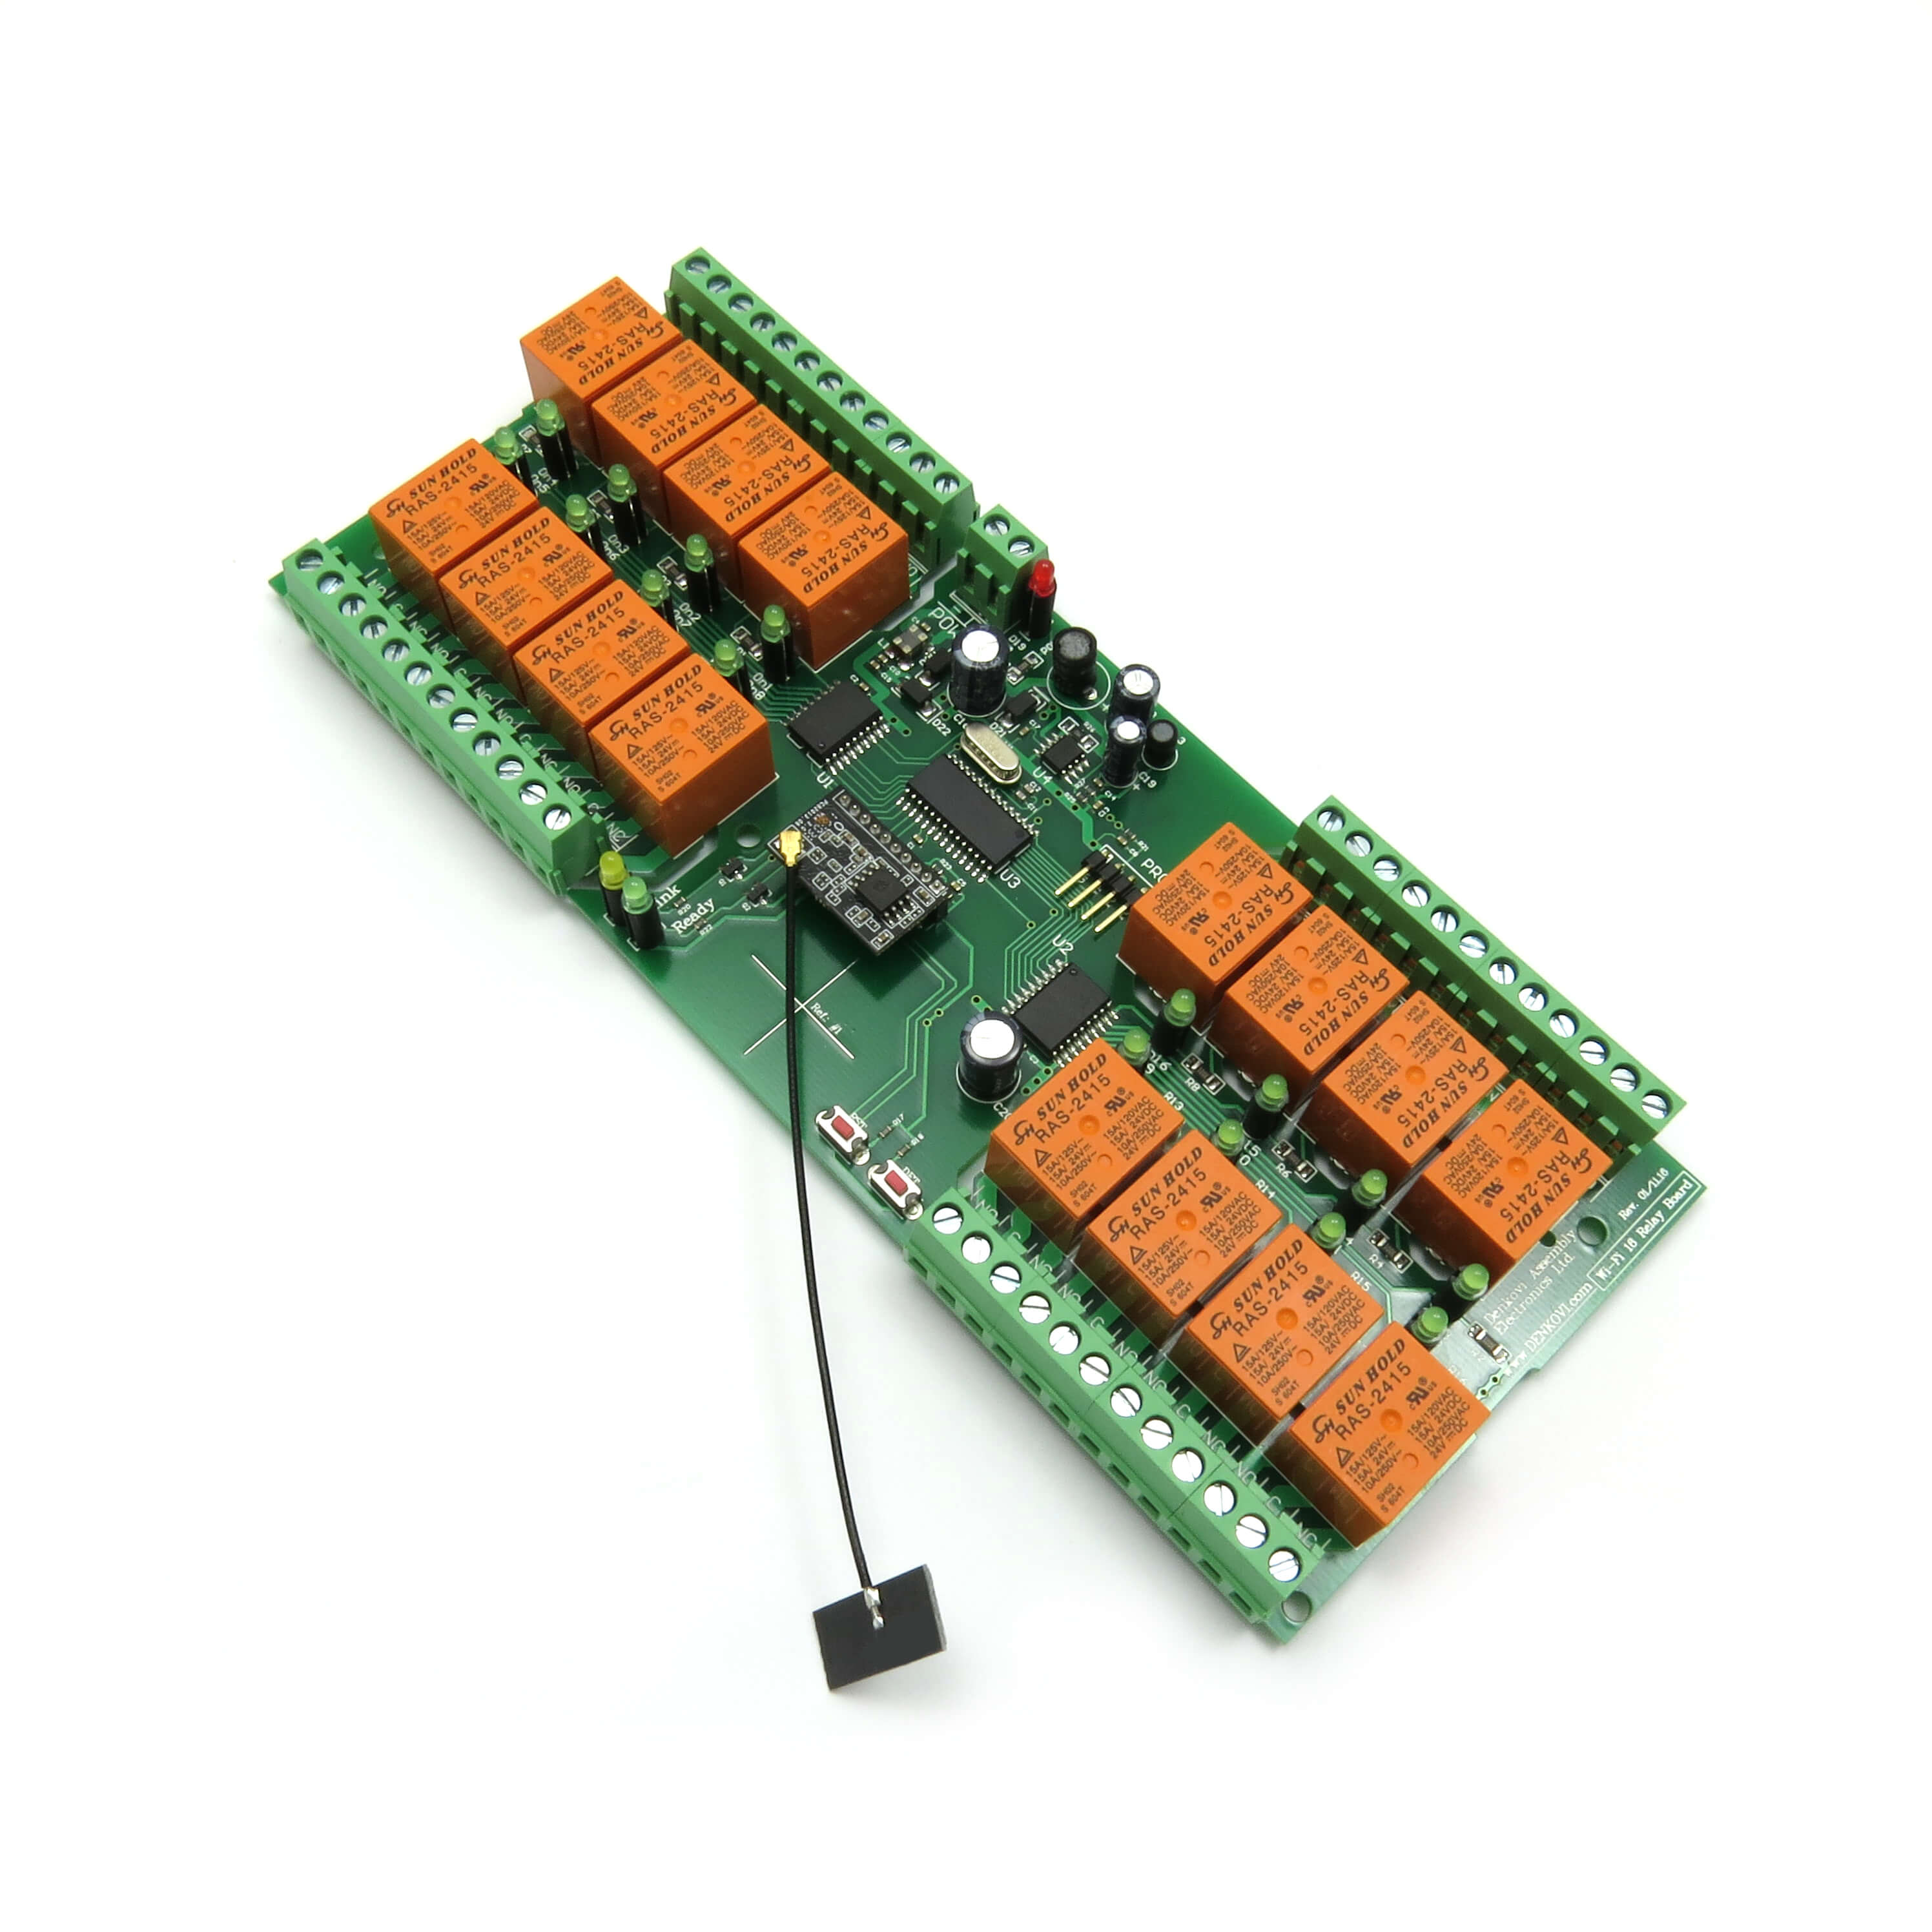 Details about Wireless 802 11 b/g/n 16 Channel Relay Board for Android,  iOS, Windows